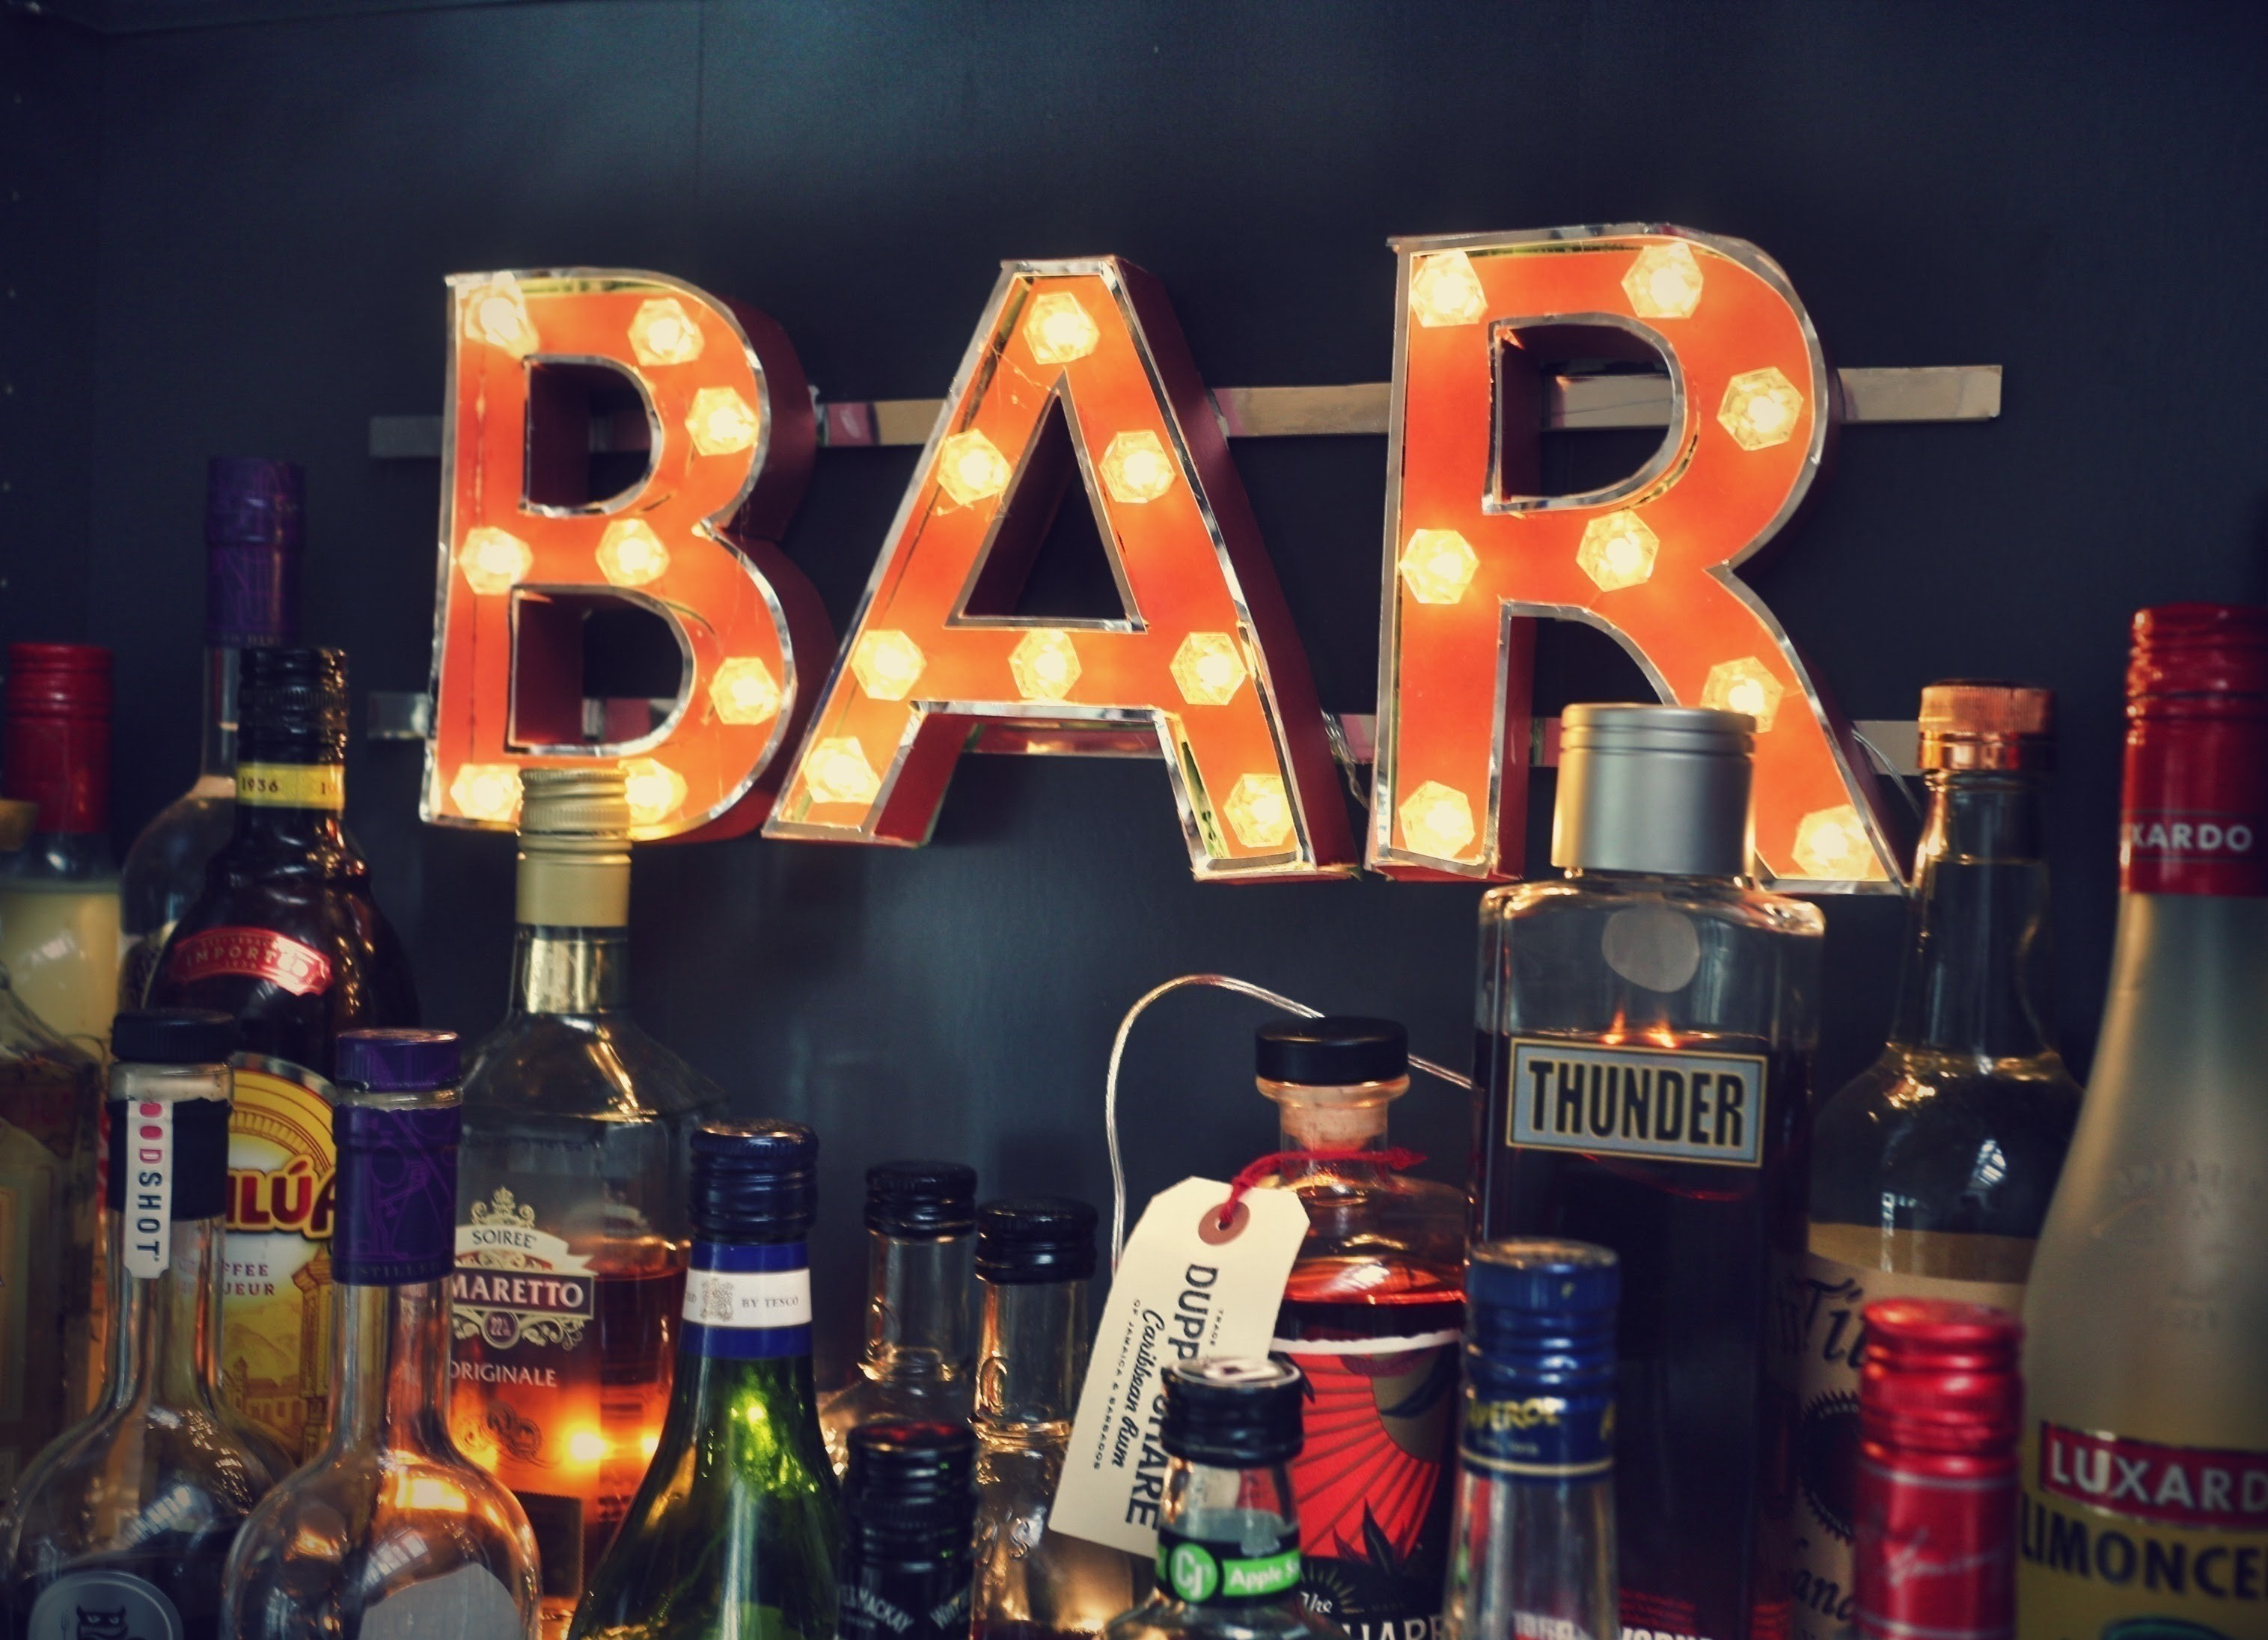 Ikea Food Storage Marquee Bar Sign · How To Make A Letter · Papercraft On